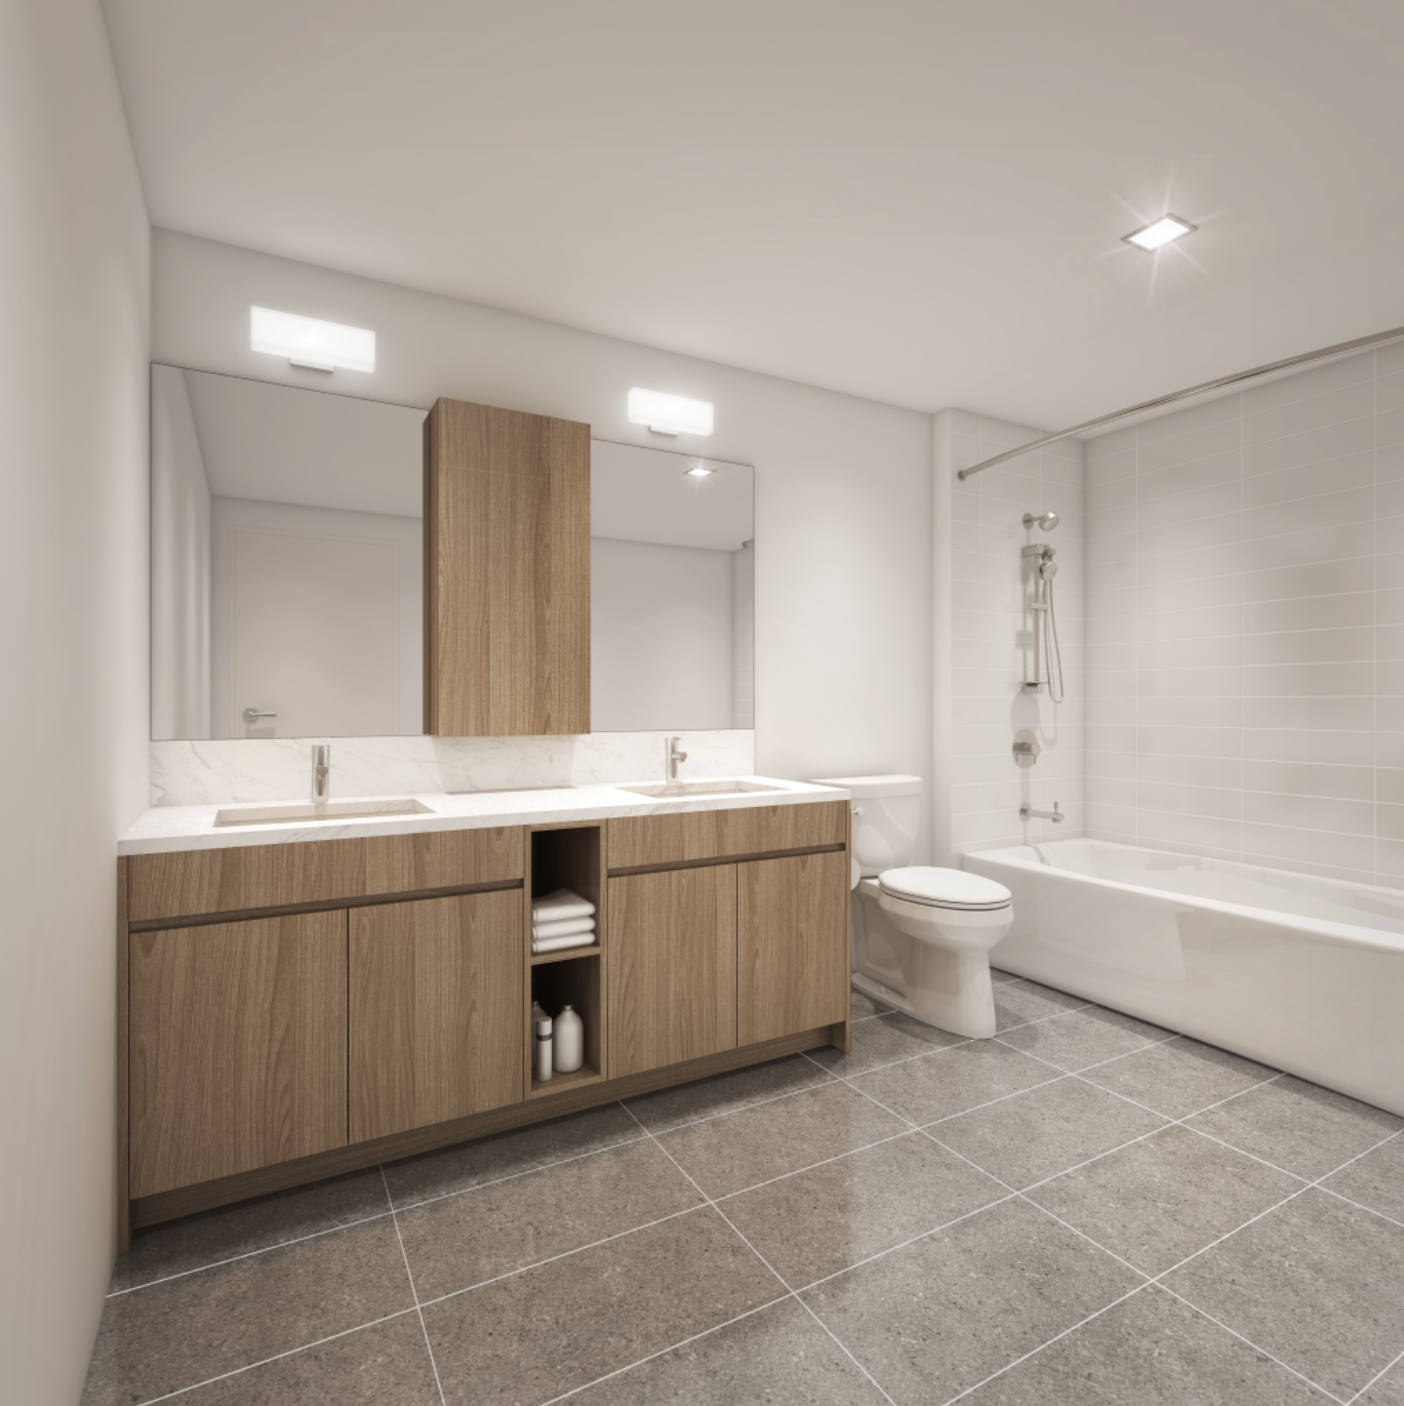 The Central Ala Moana - Bathroom Rendering